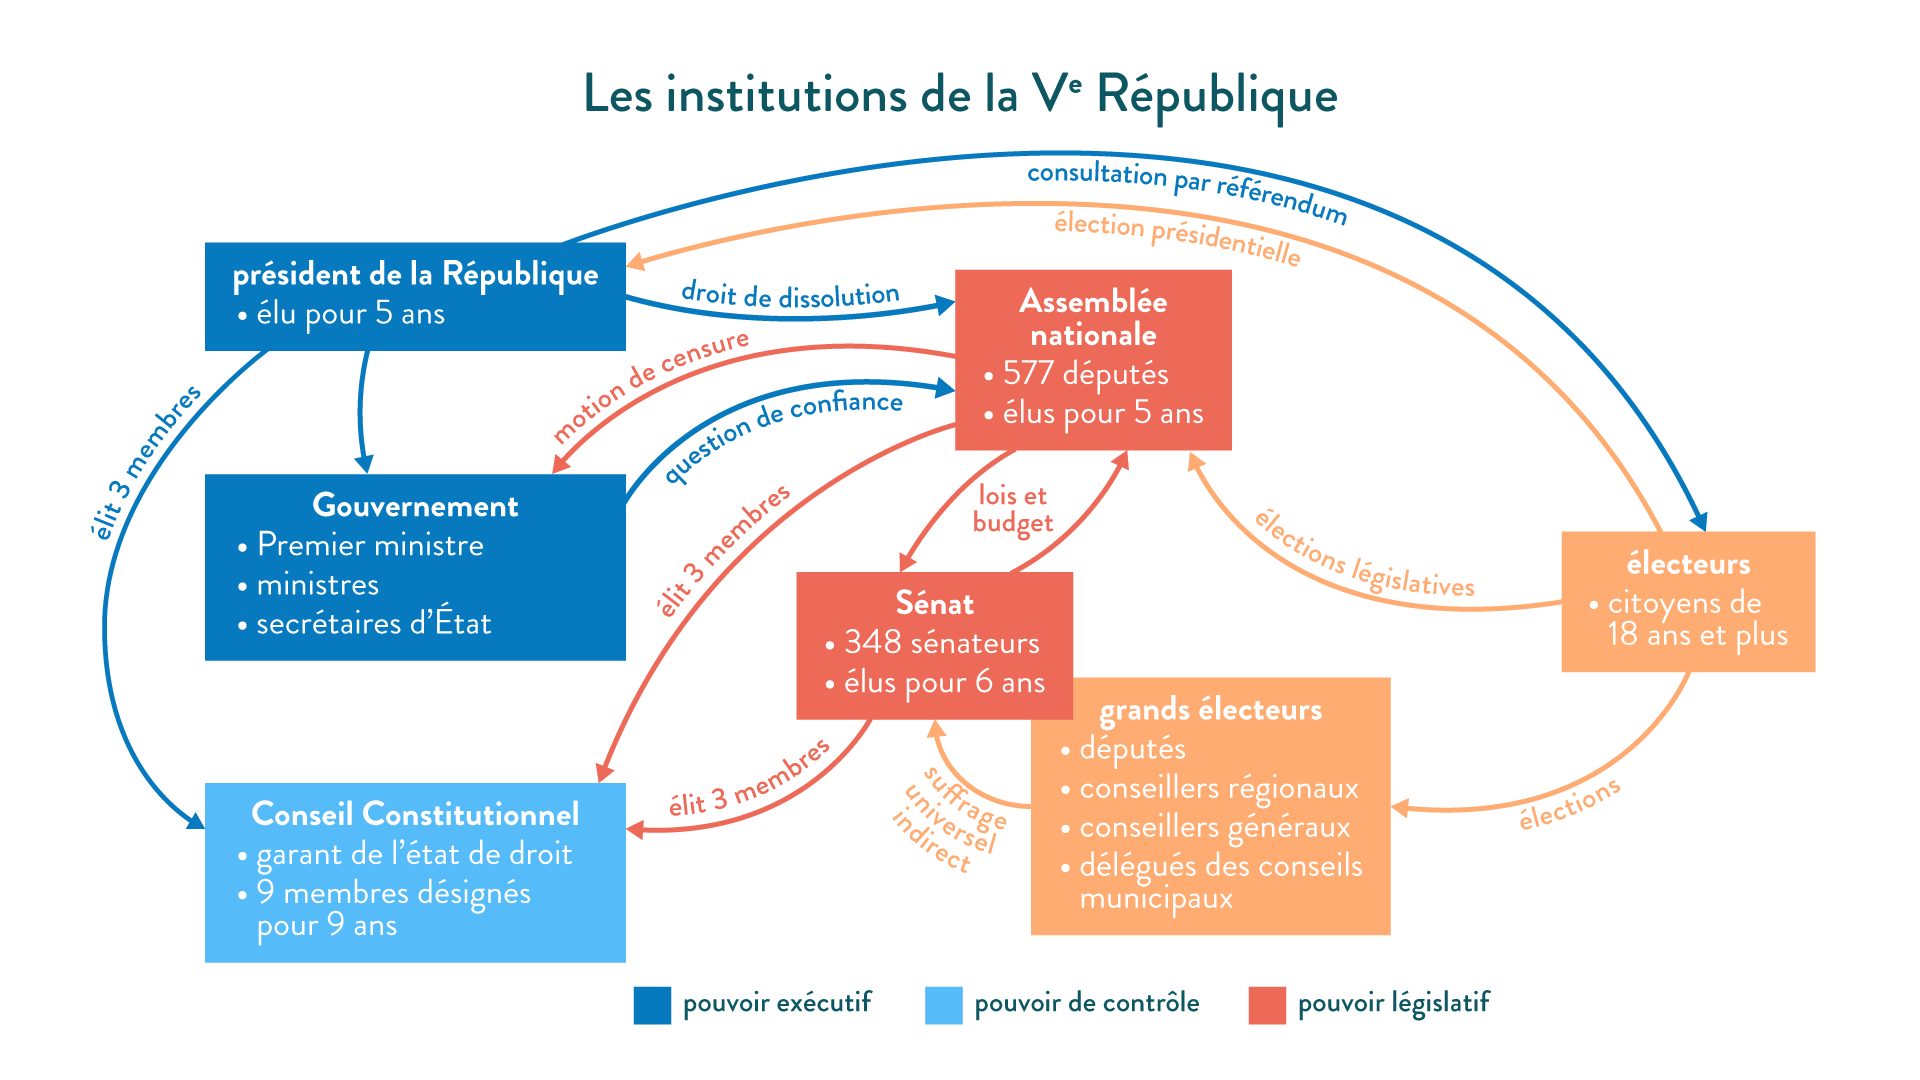 Les institutions de le Ve République